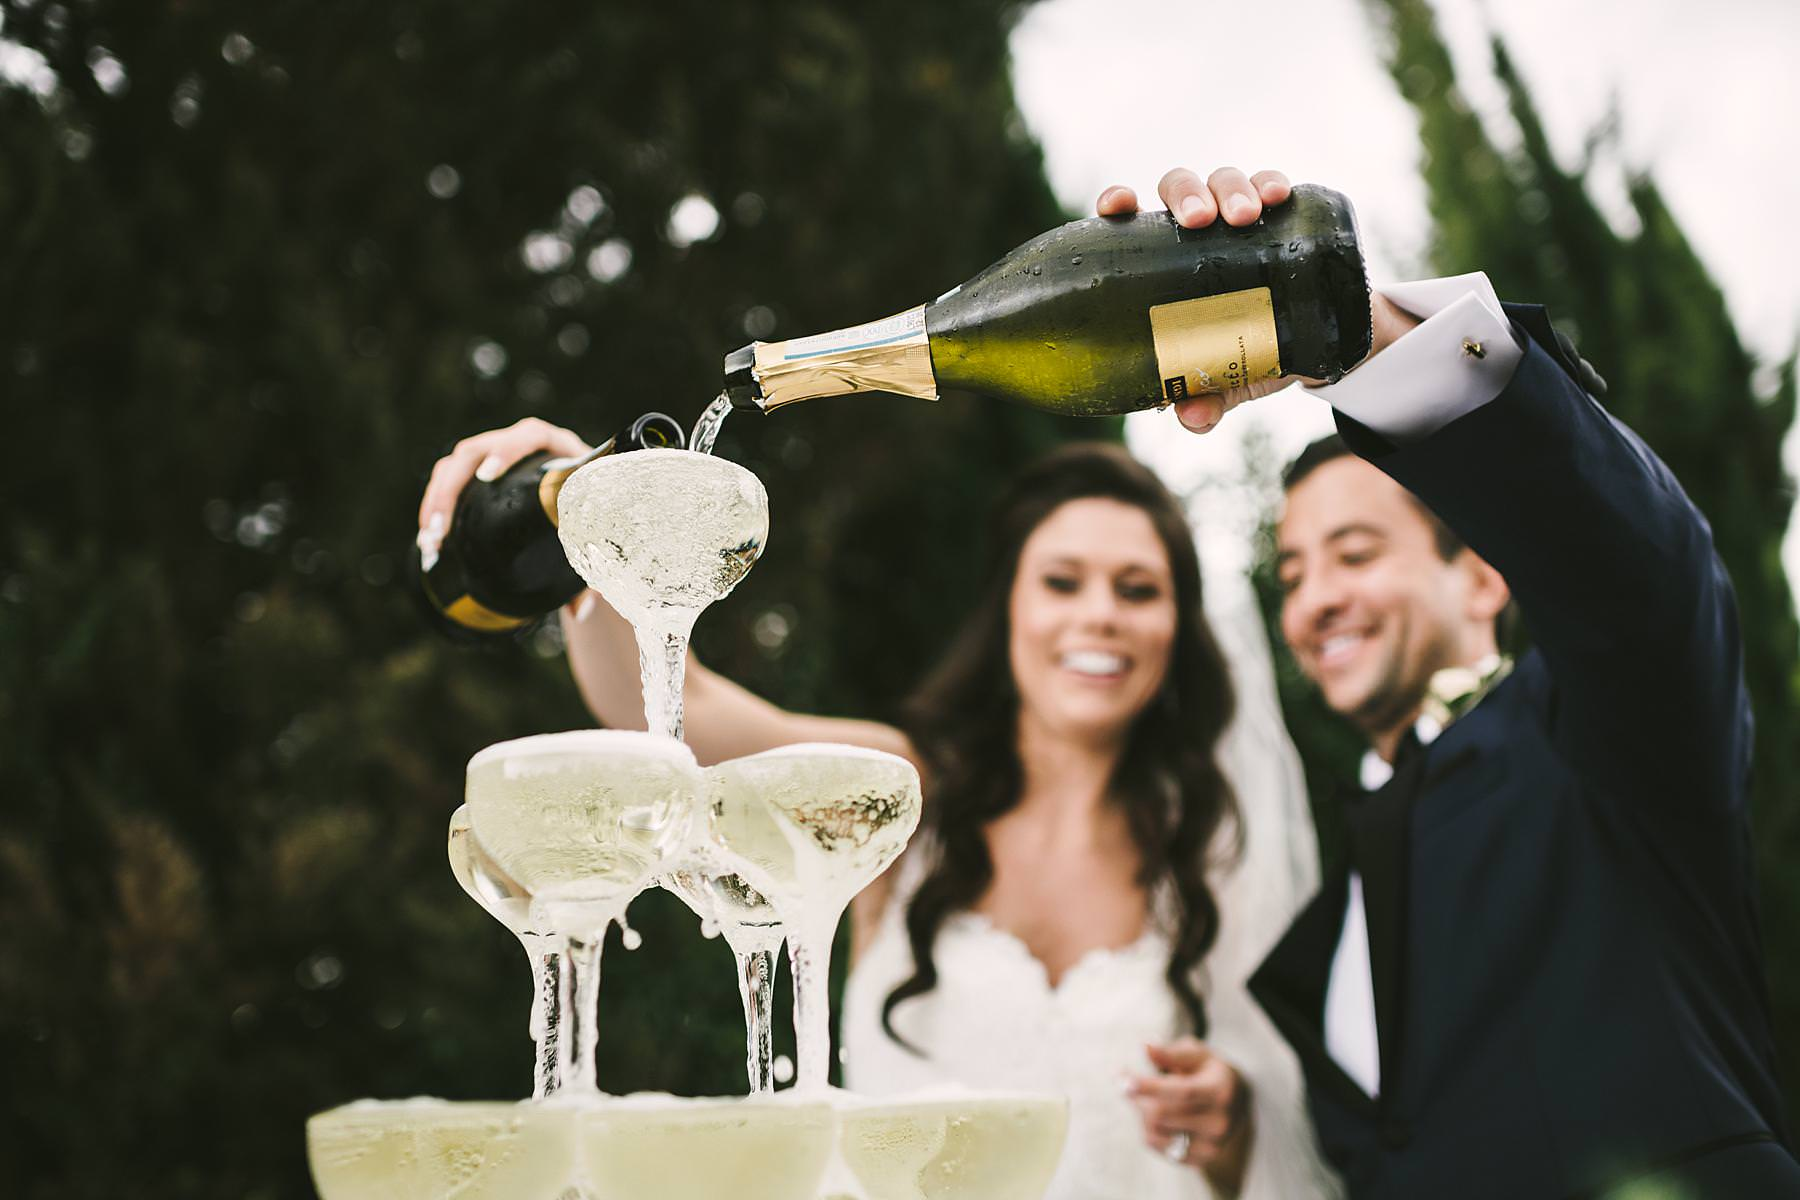 Exciting champagne pyramid toast during destination wedding cocktail event at Villa La Selva Wine Resort in Tuscany countryside